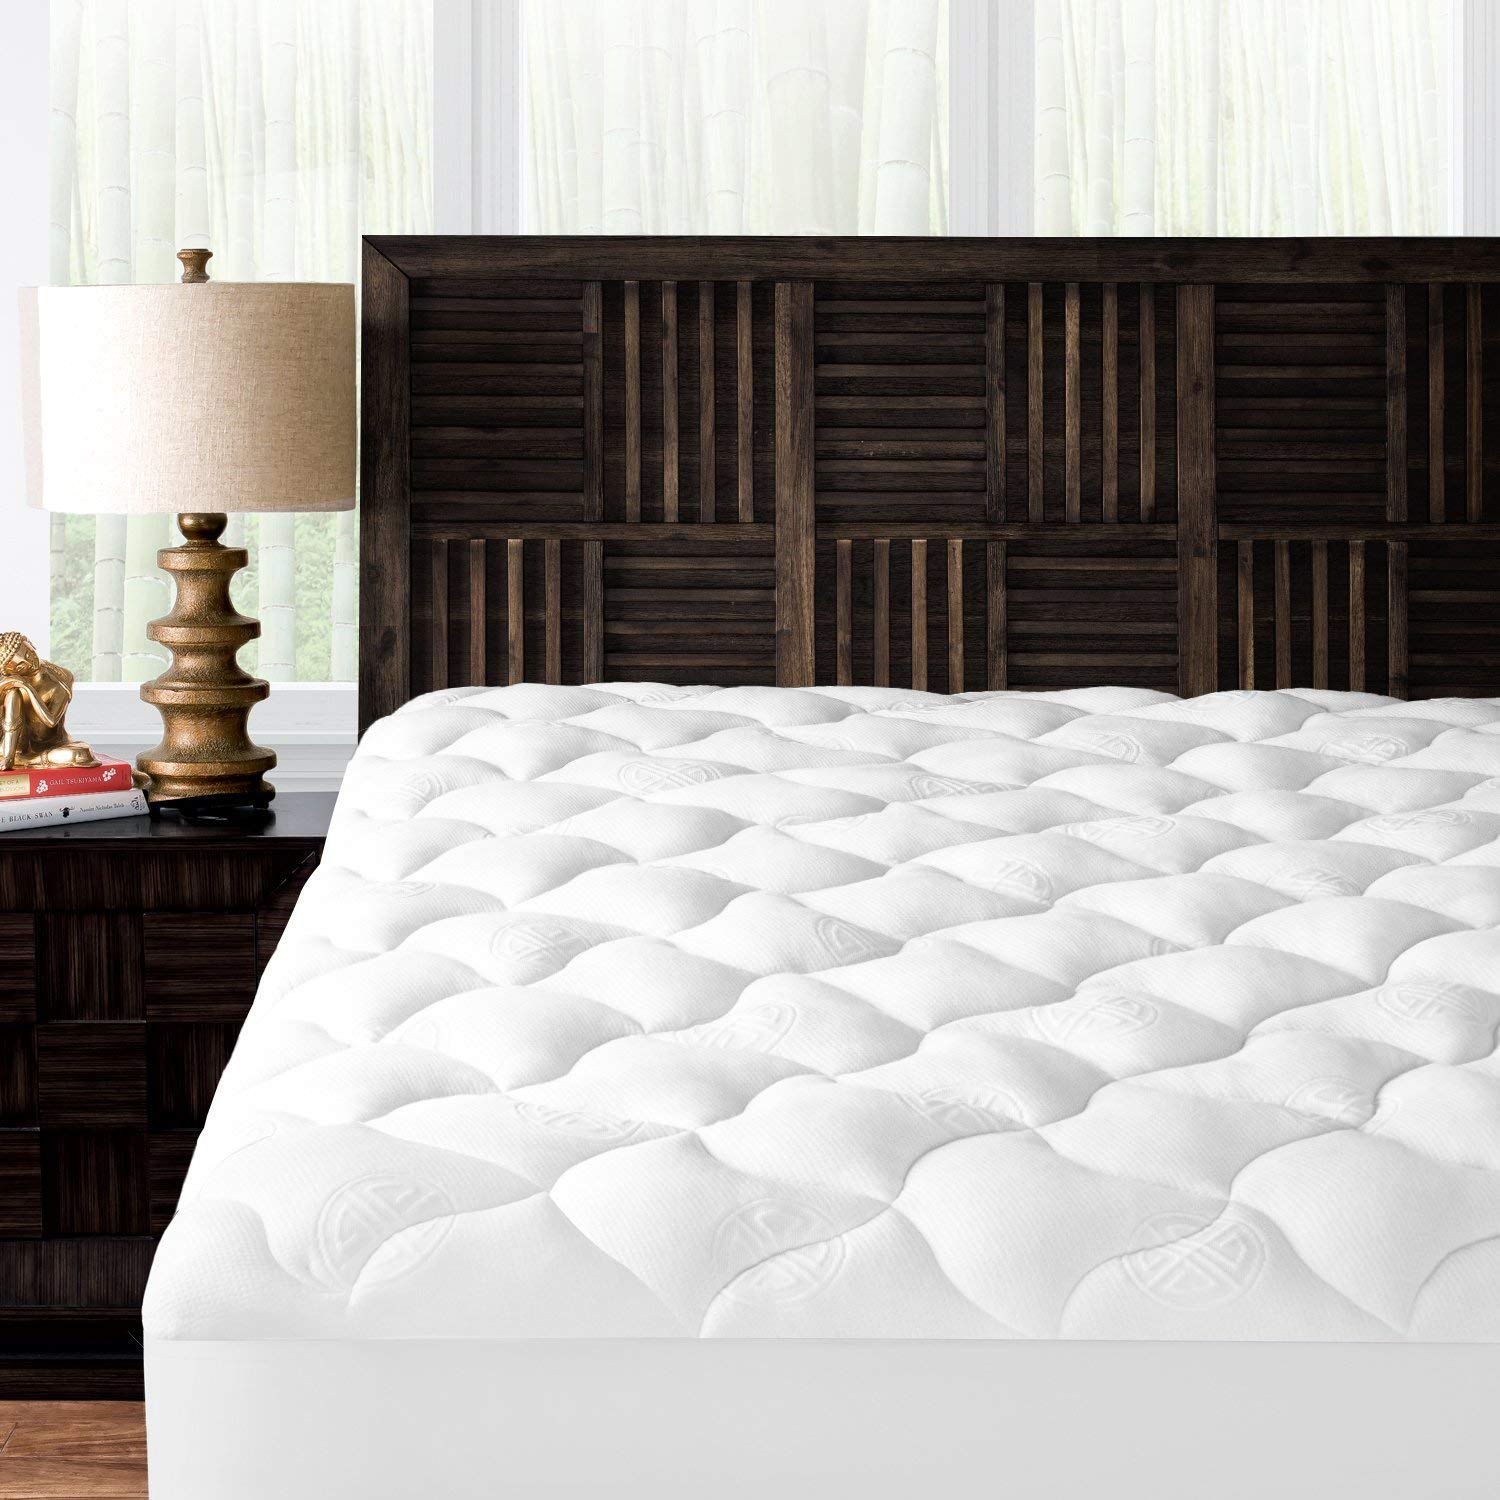 Mandarin Home Collection bamboo mattress topper review by www.dailysleep.org